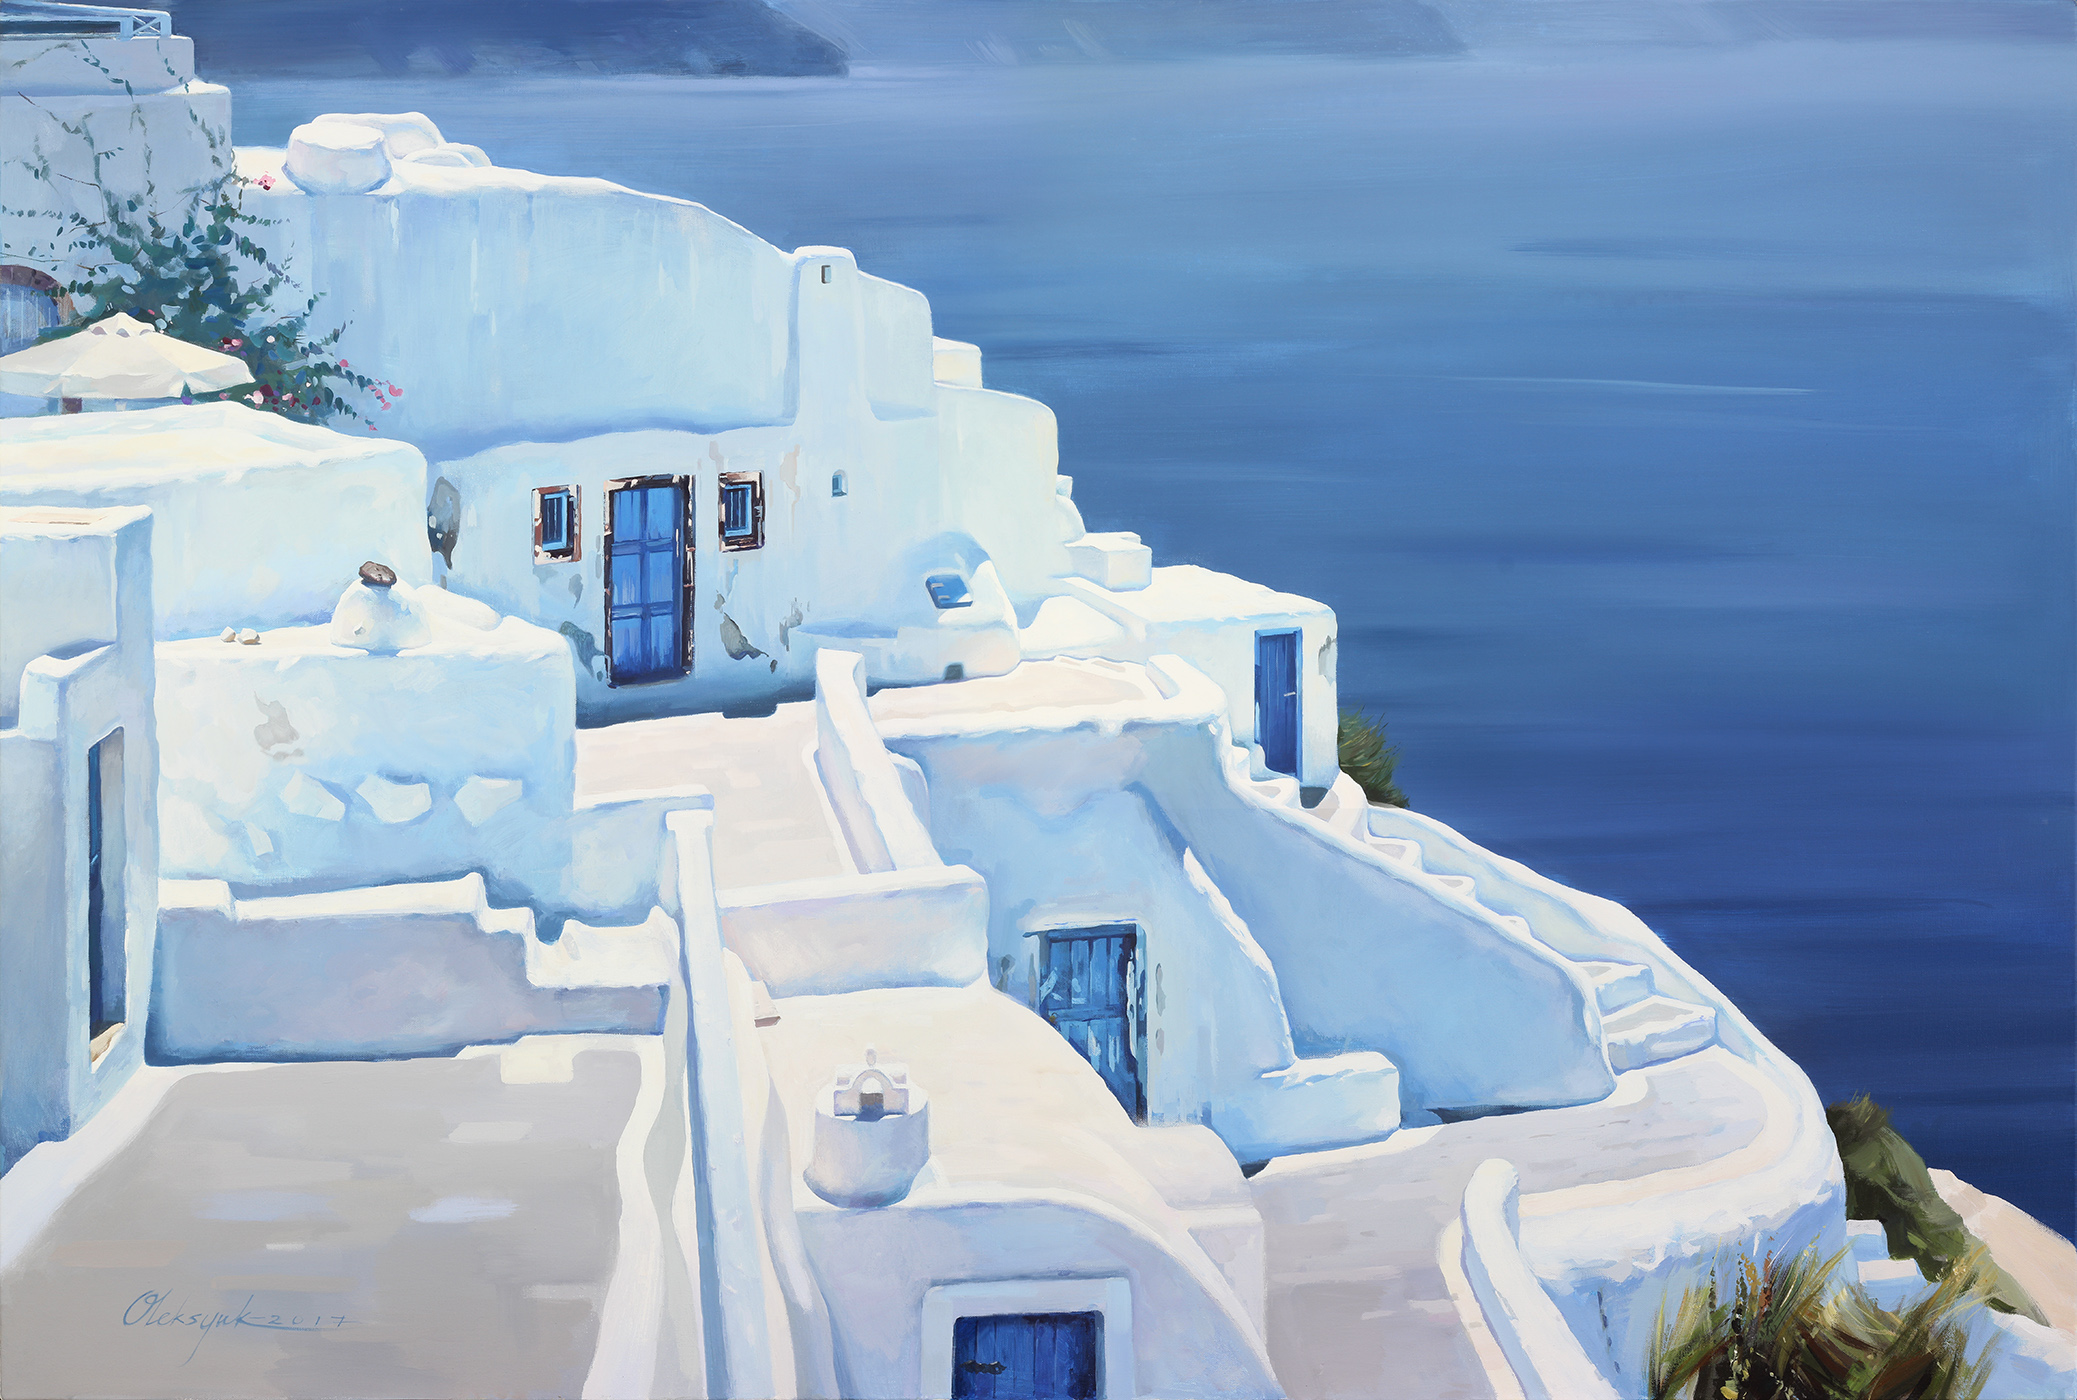 #1. Santorini Meditative views